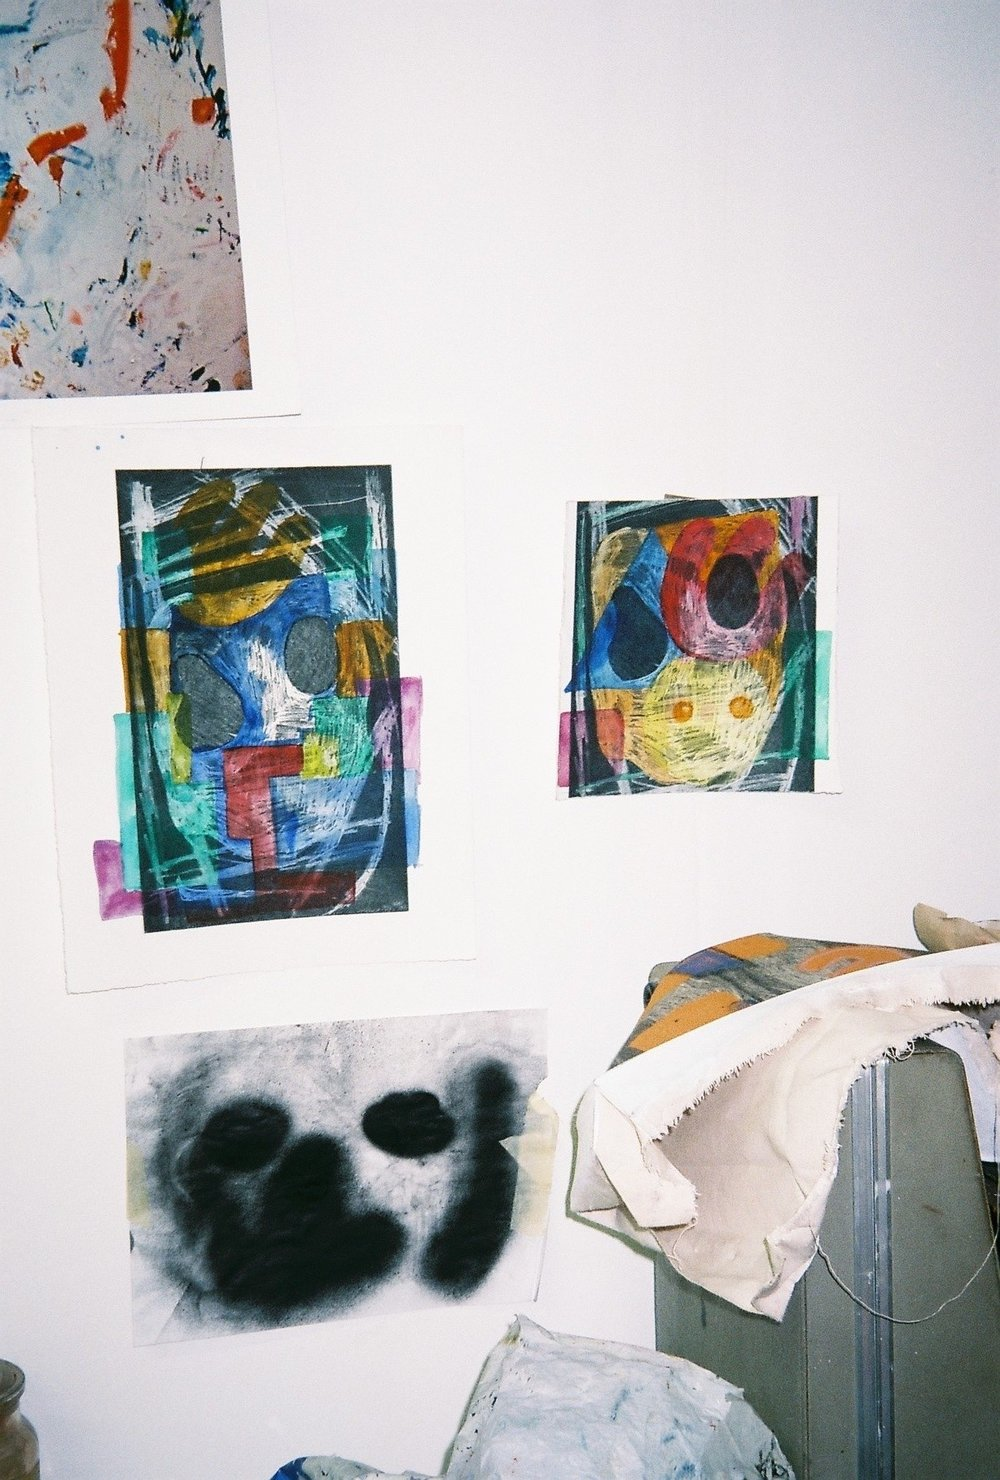 alice irwin, studio visit by dateagleart. photography by delilah olson